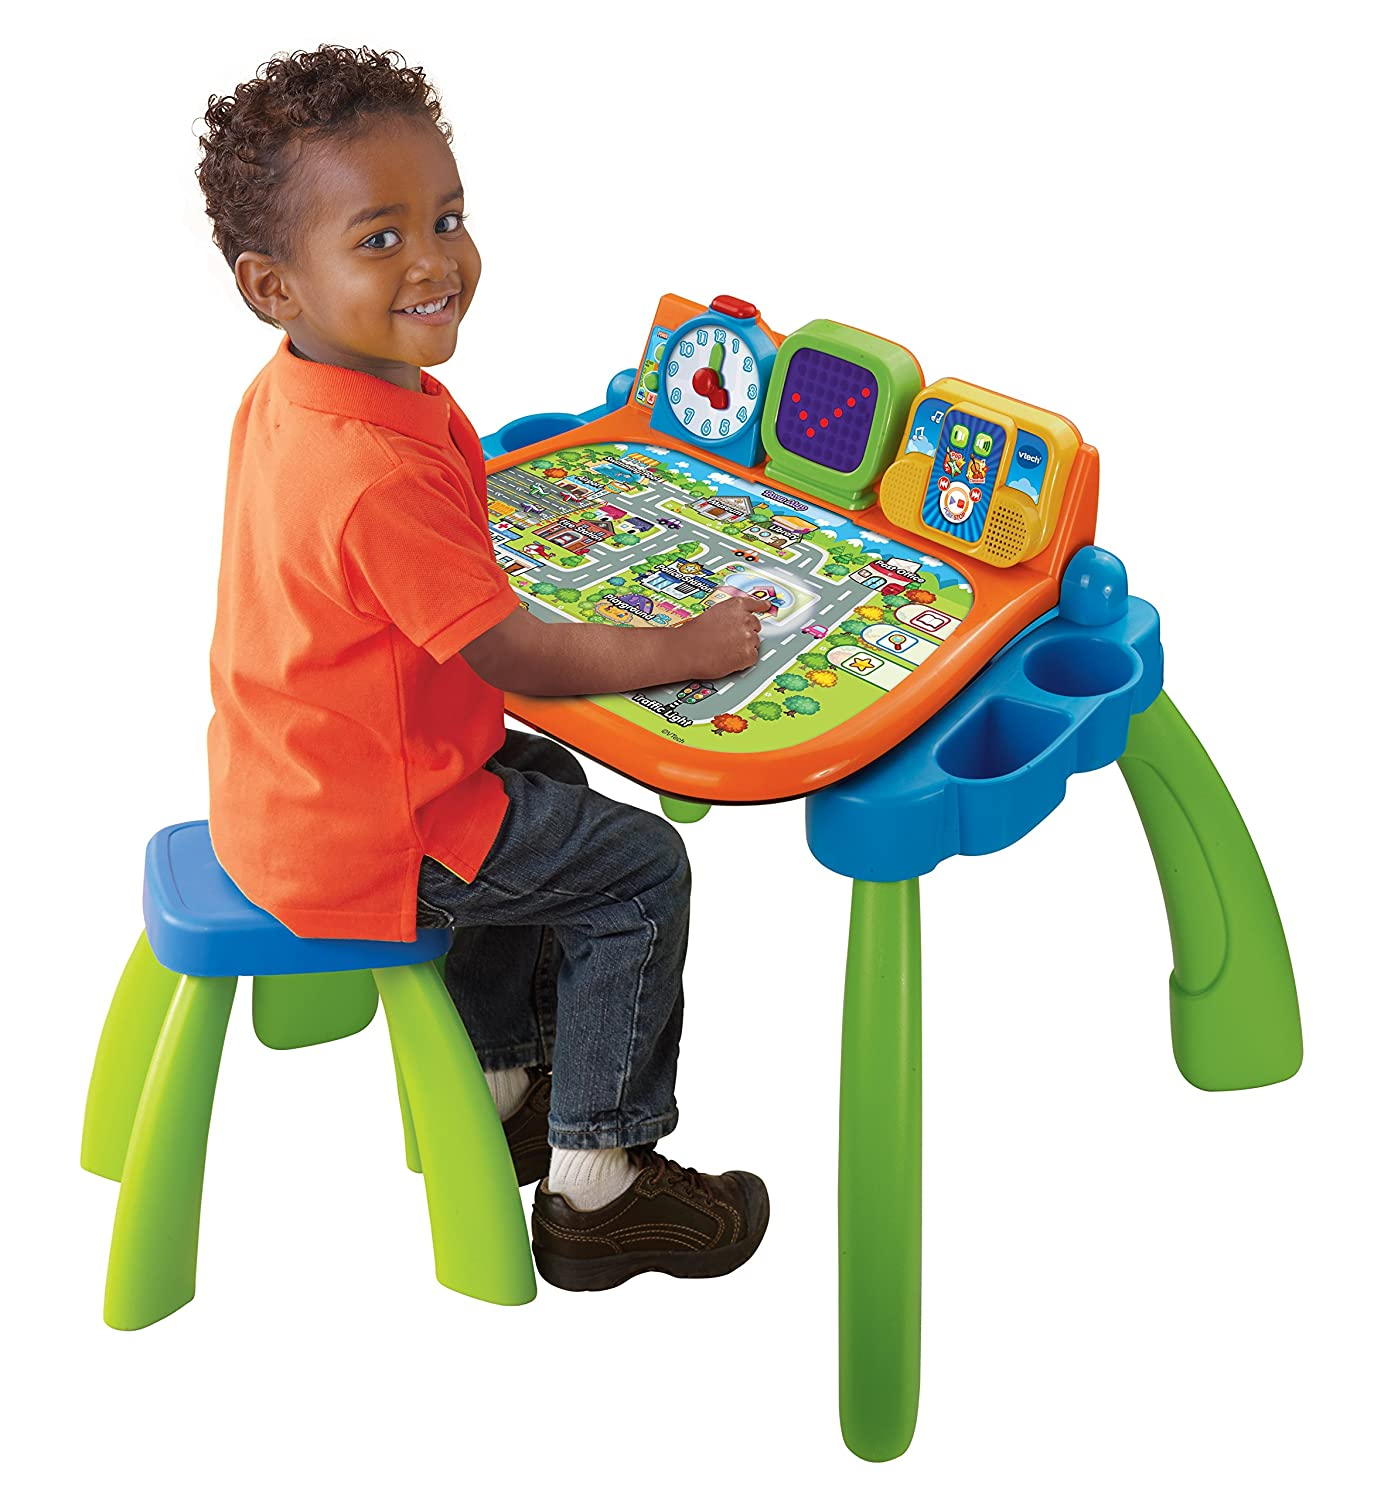 Amazon VTech Touch and Learn Activity Desk Frustration Free